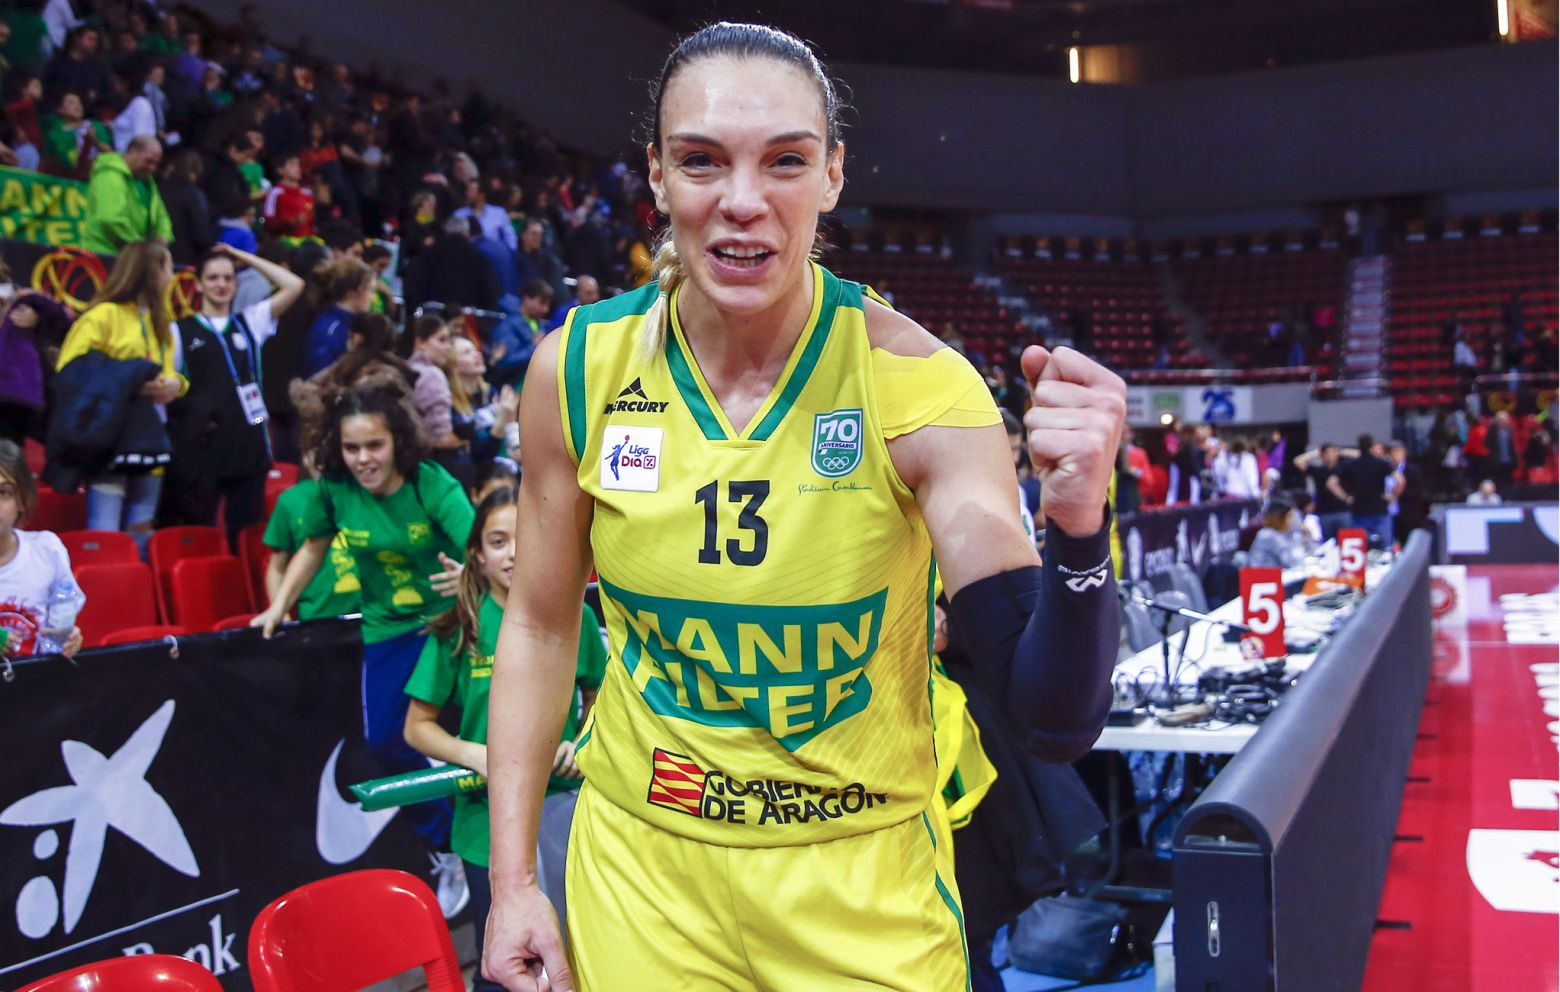 LUCI PASCUA has signed with Gernika